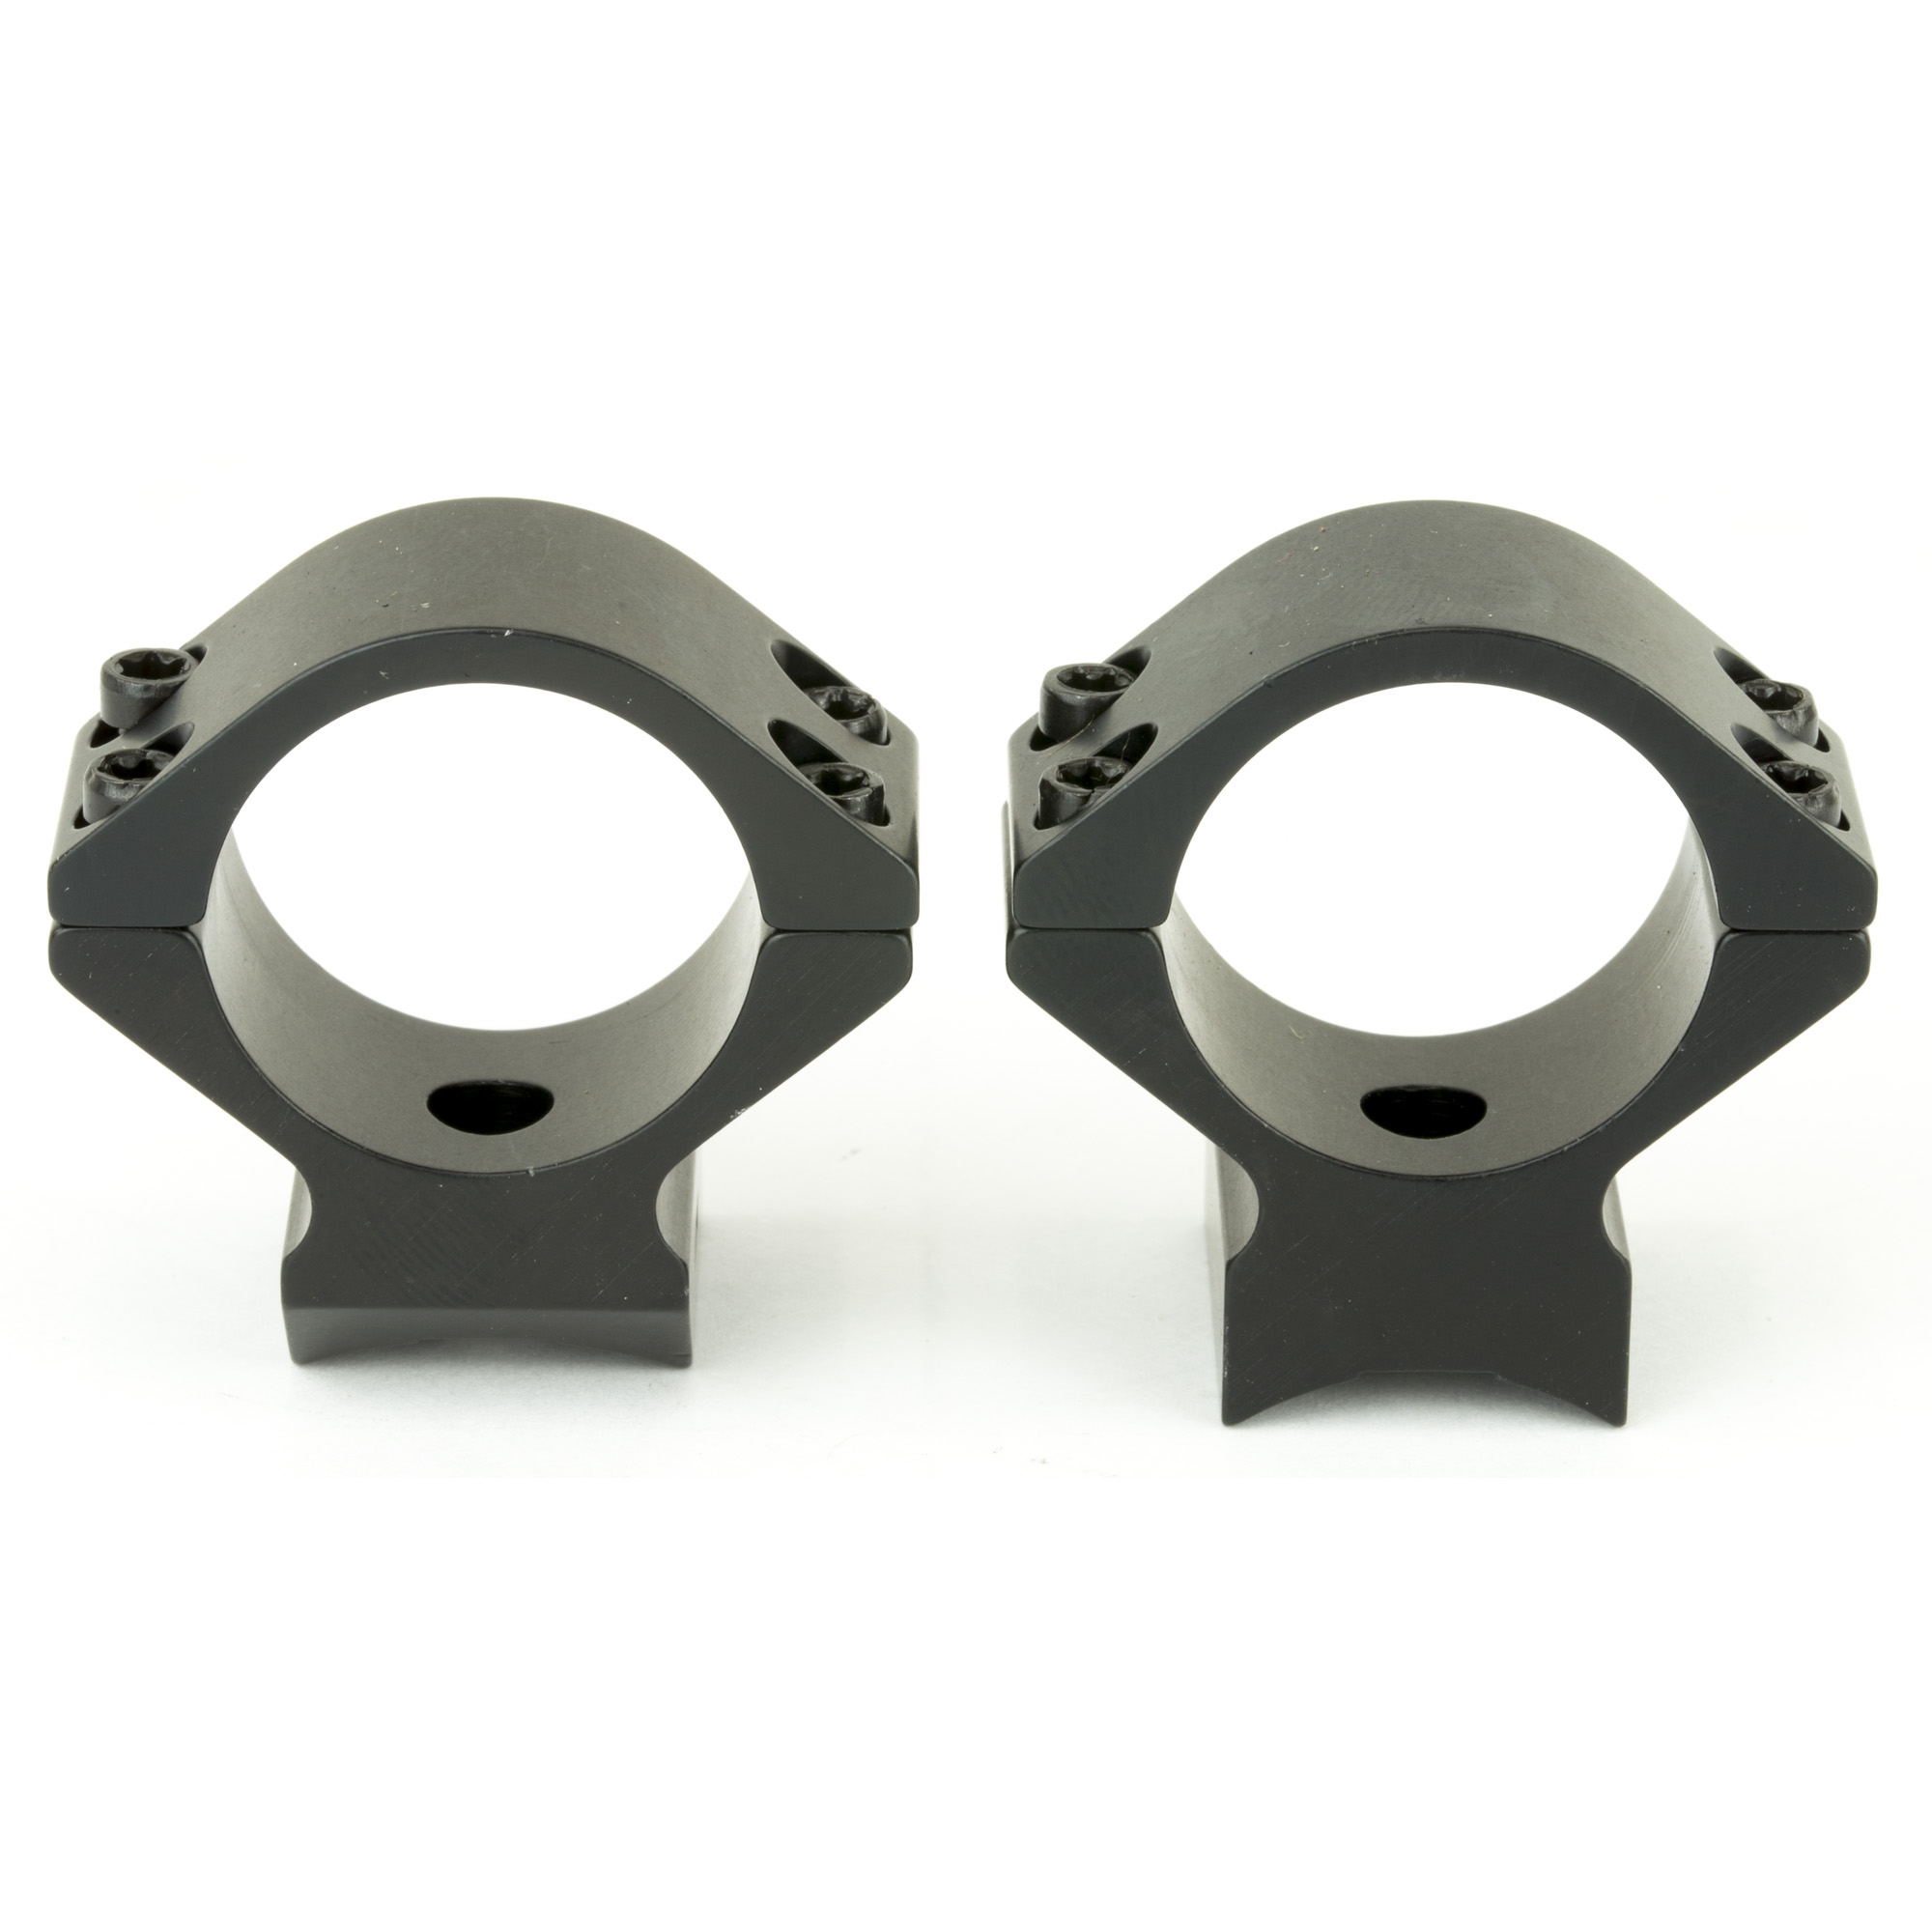 "Barrett Fieldcraft series rings"" high quality scope rings."